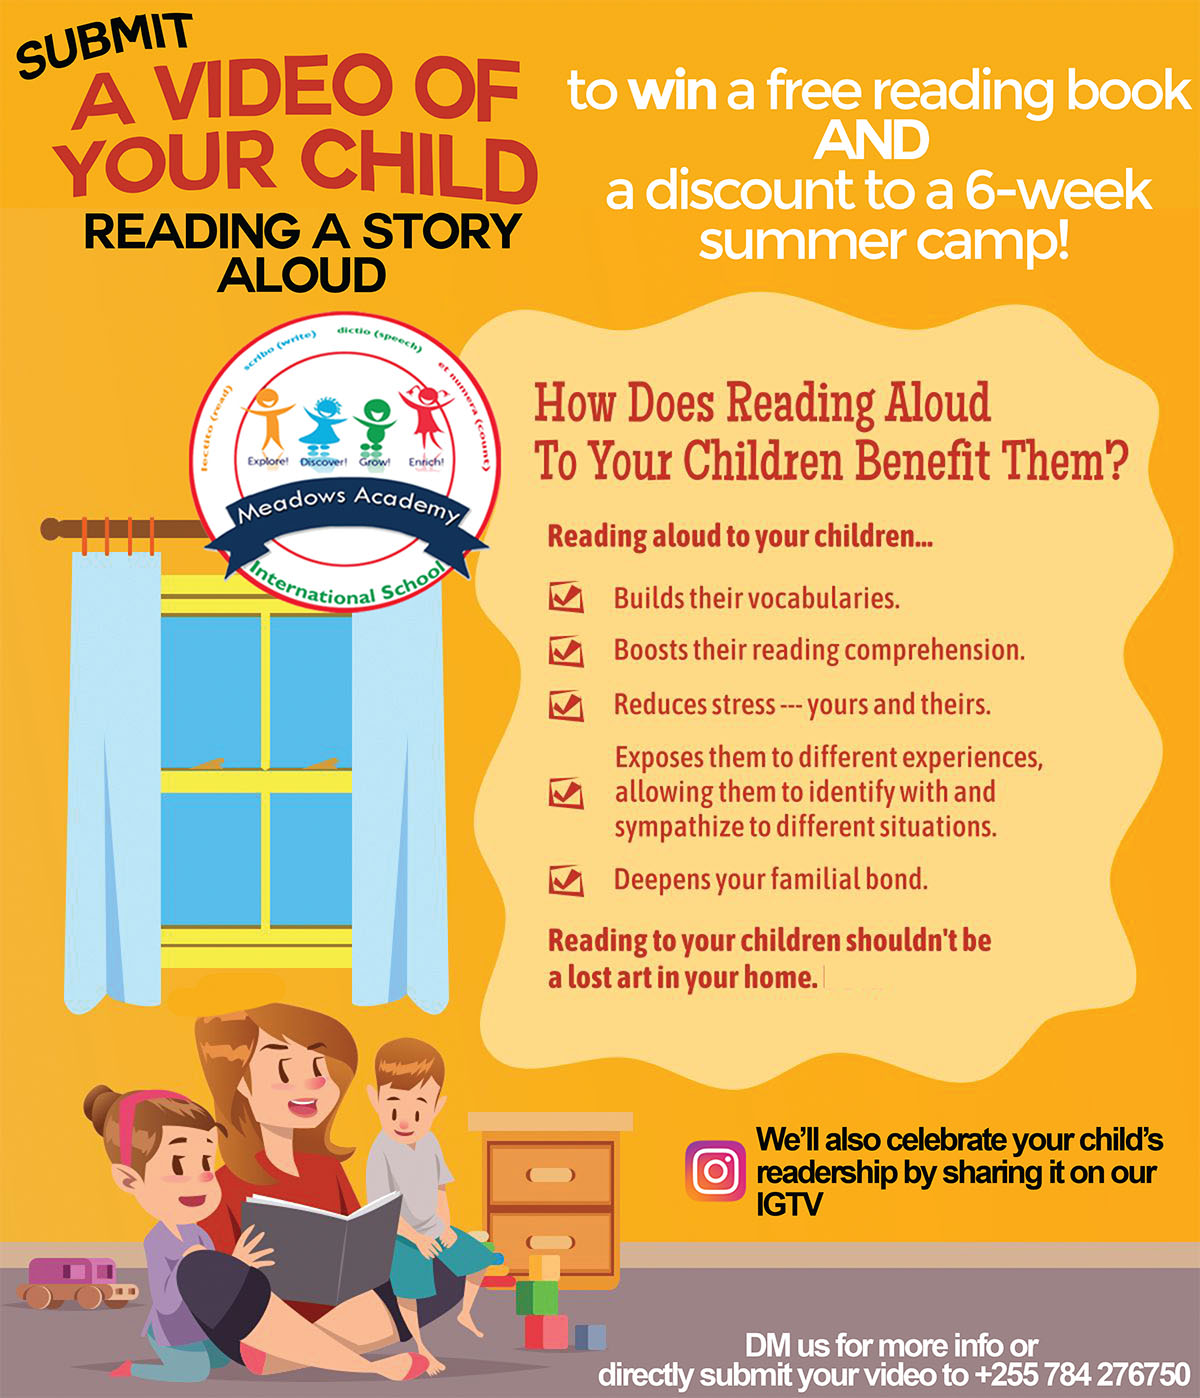 Meadows-Academy-Submit-a-video-of-your-child-reading-a-story-aloud